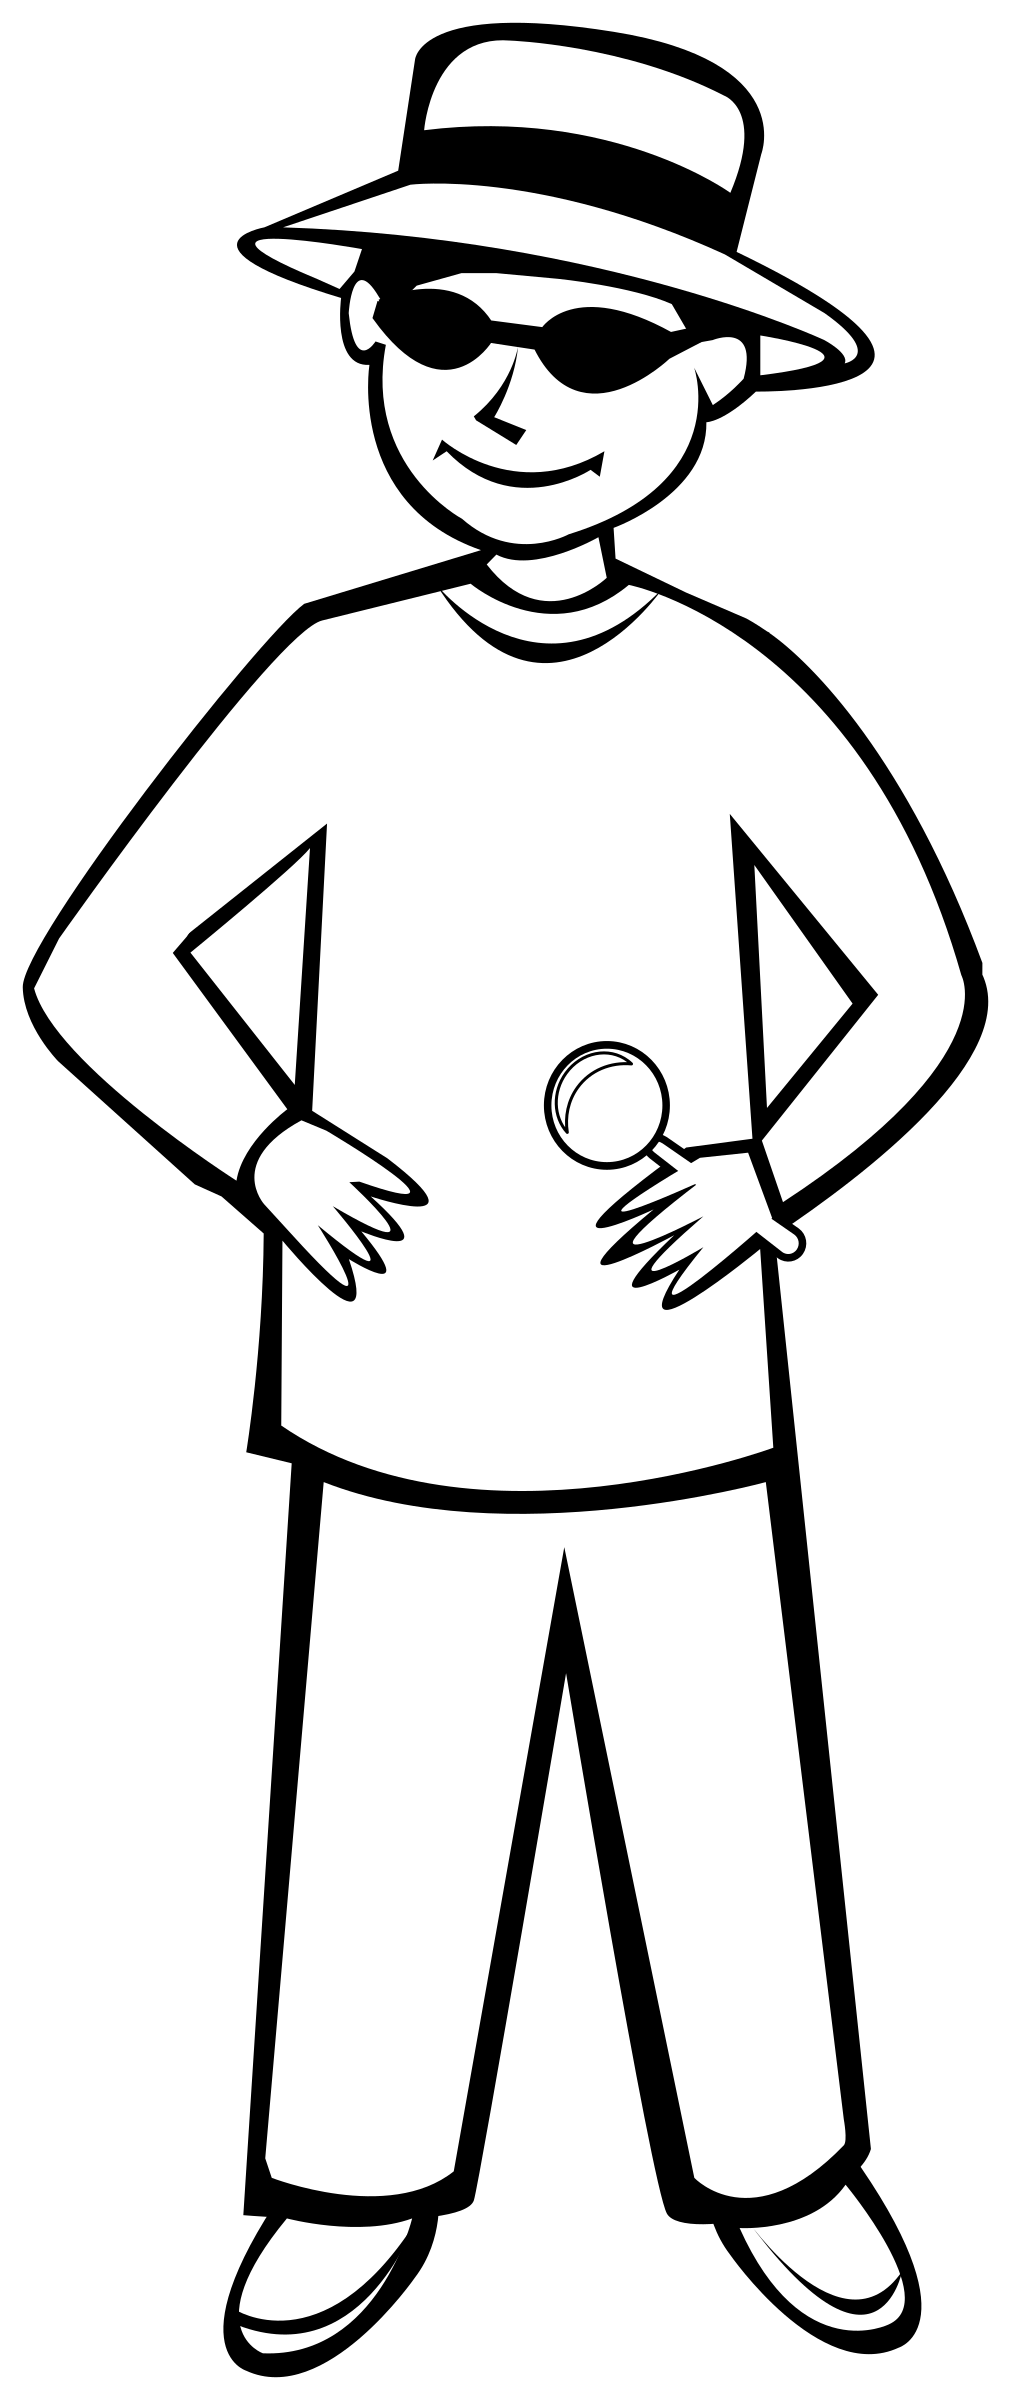 Outlines Of People - ClipArt Best